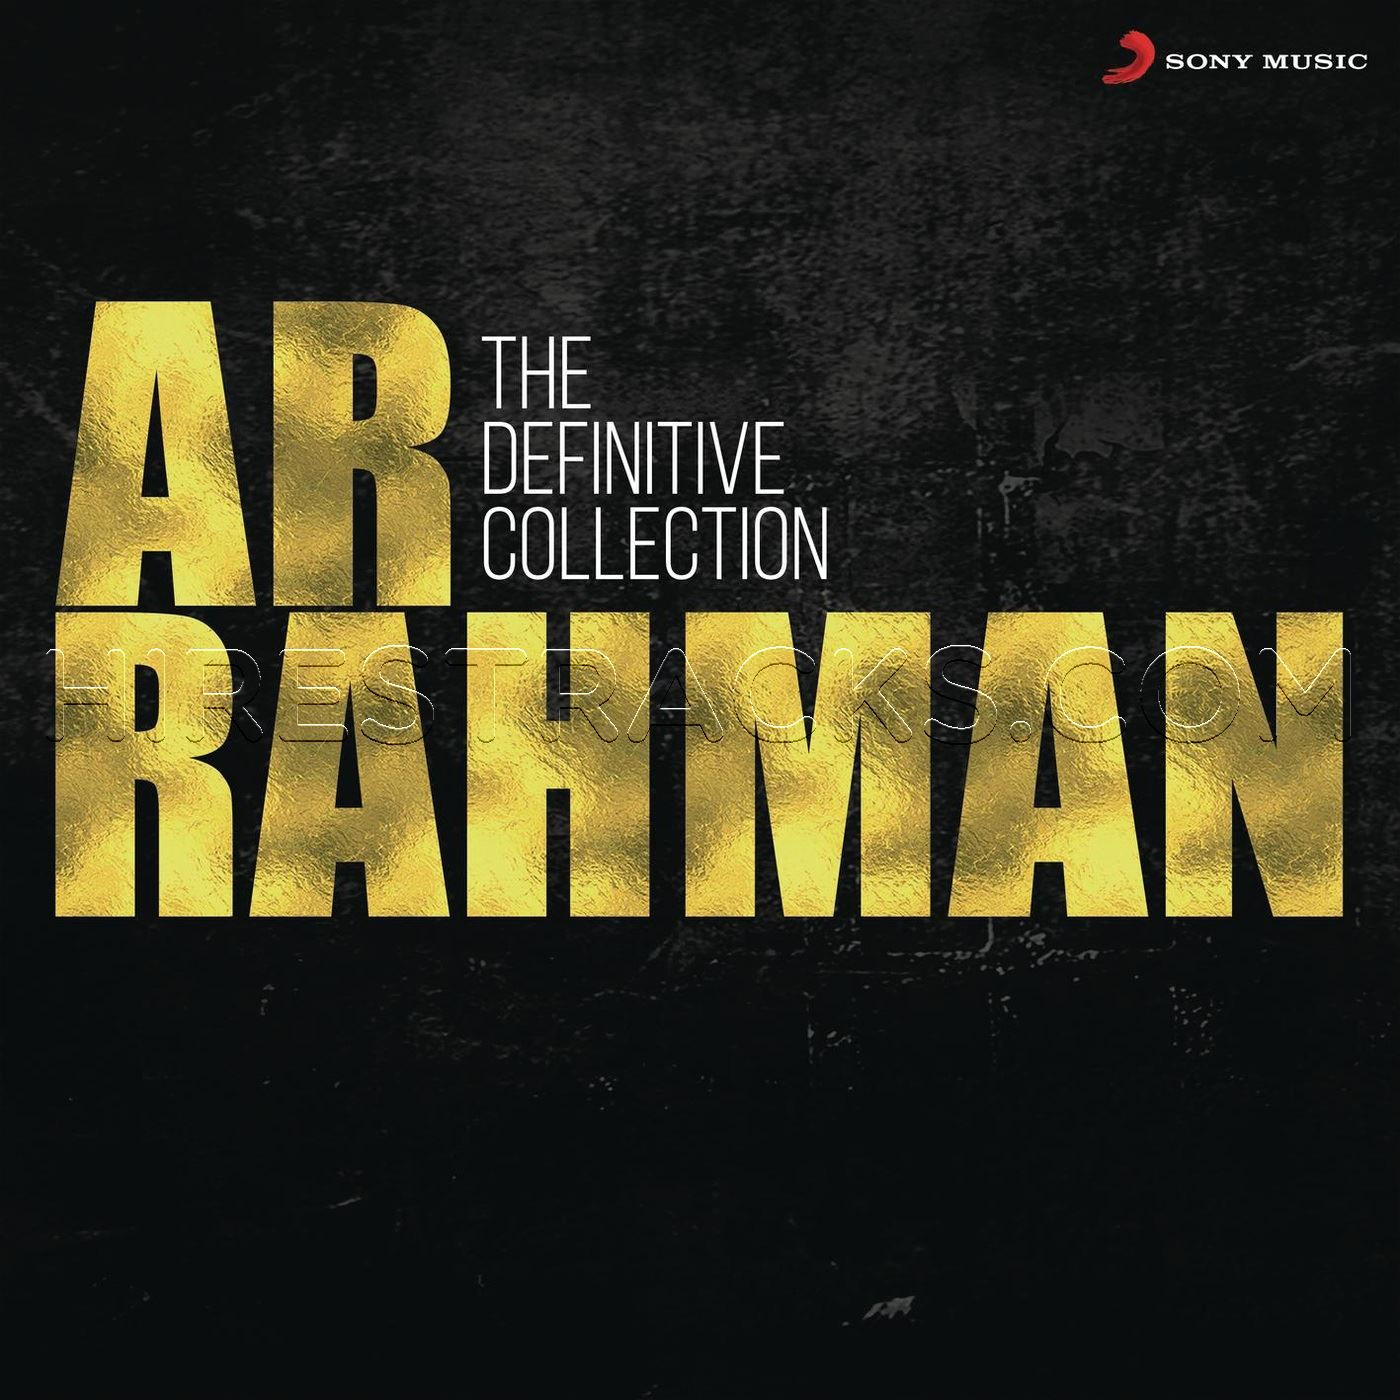 The Definitive Collection (2018) (A.R. Rahman)